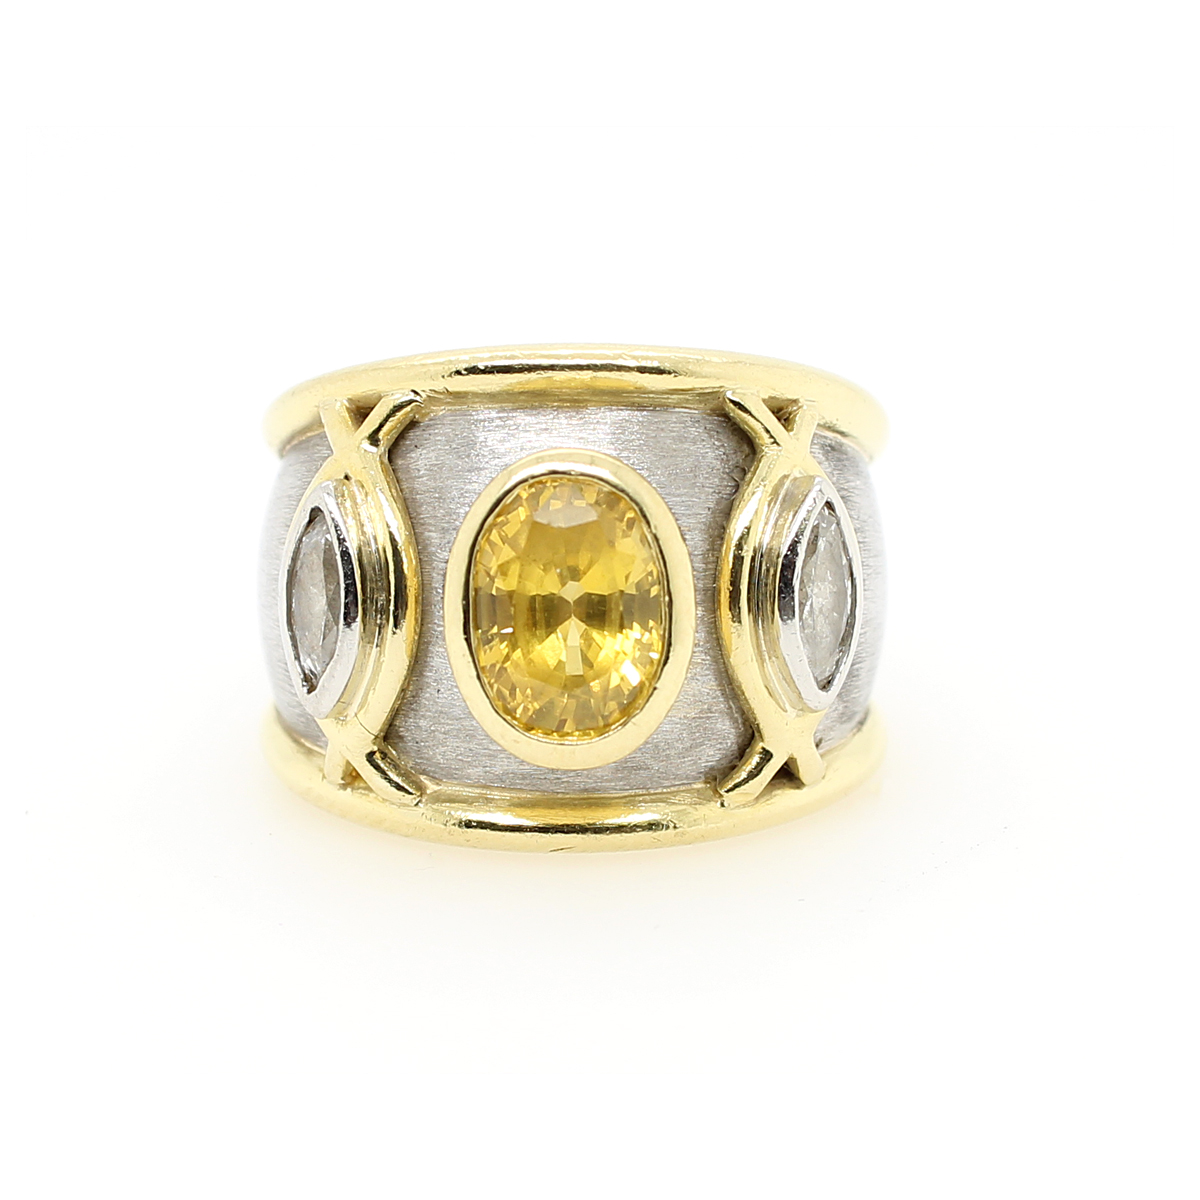 Vintage Boris LeBeau Platinum, Golden Yellow Sapphire and Diamond Ring